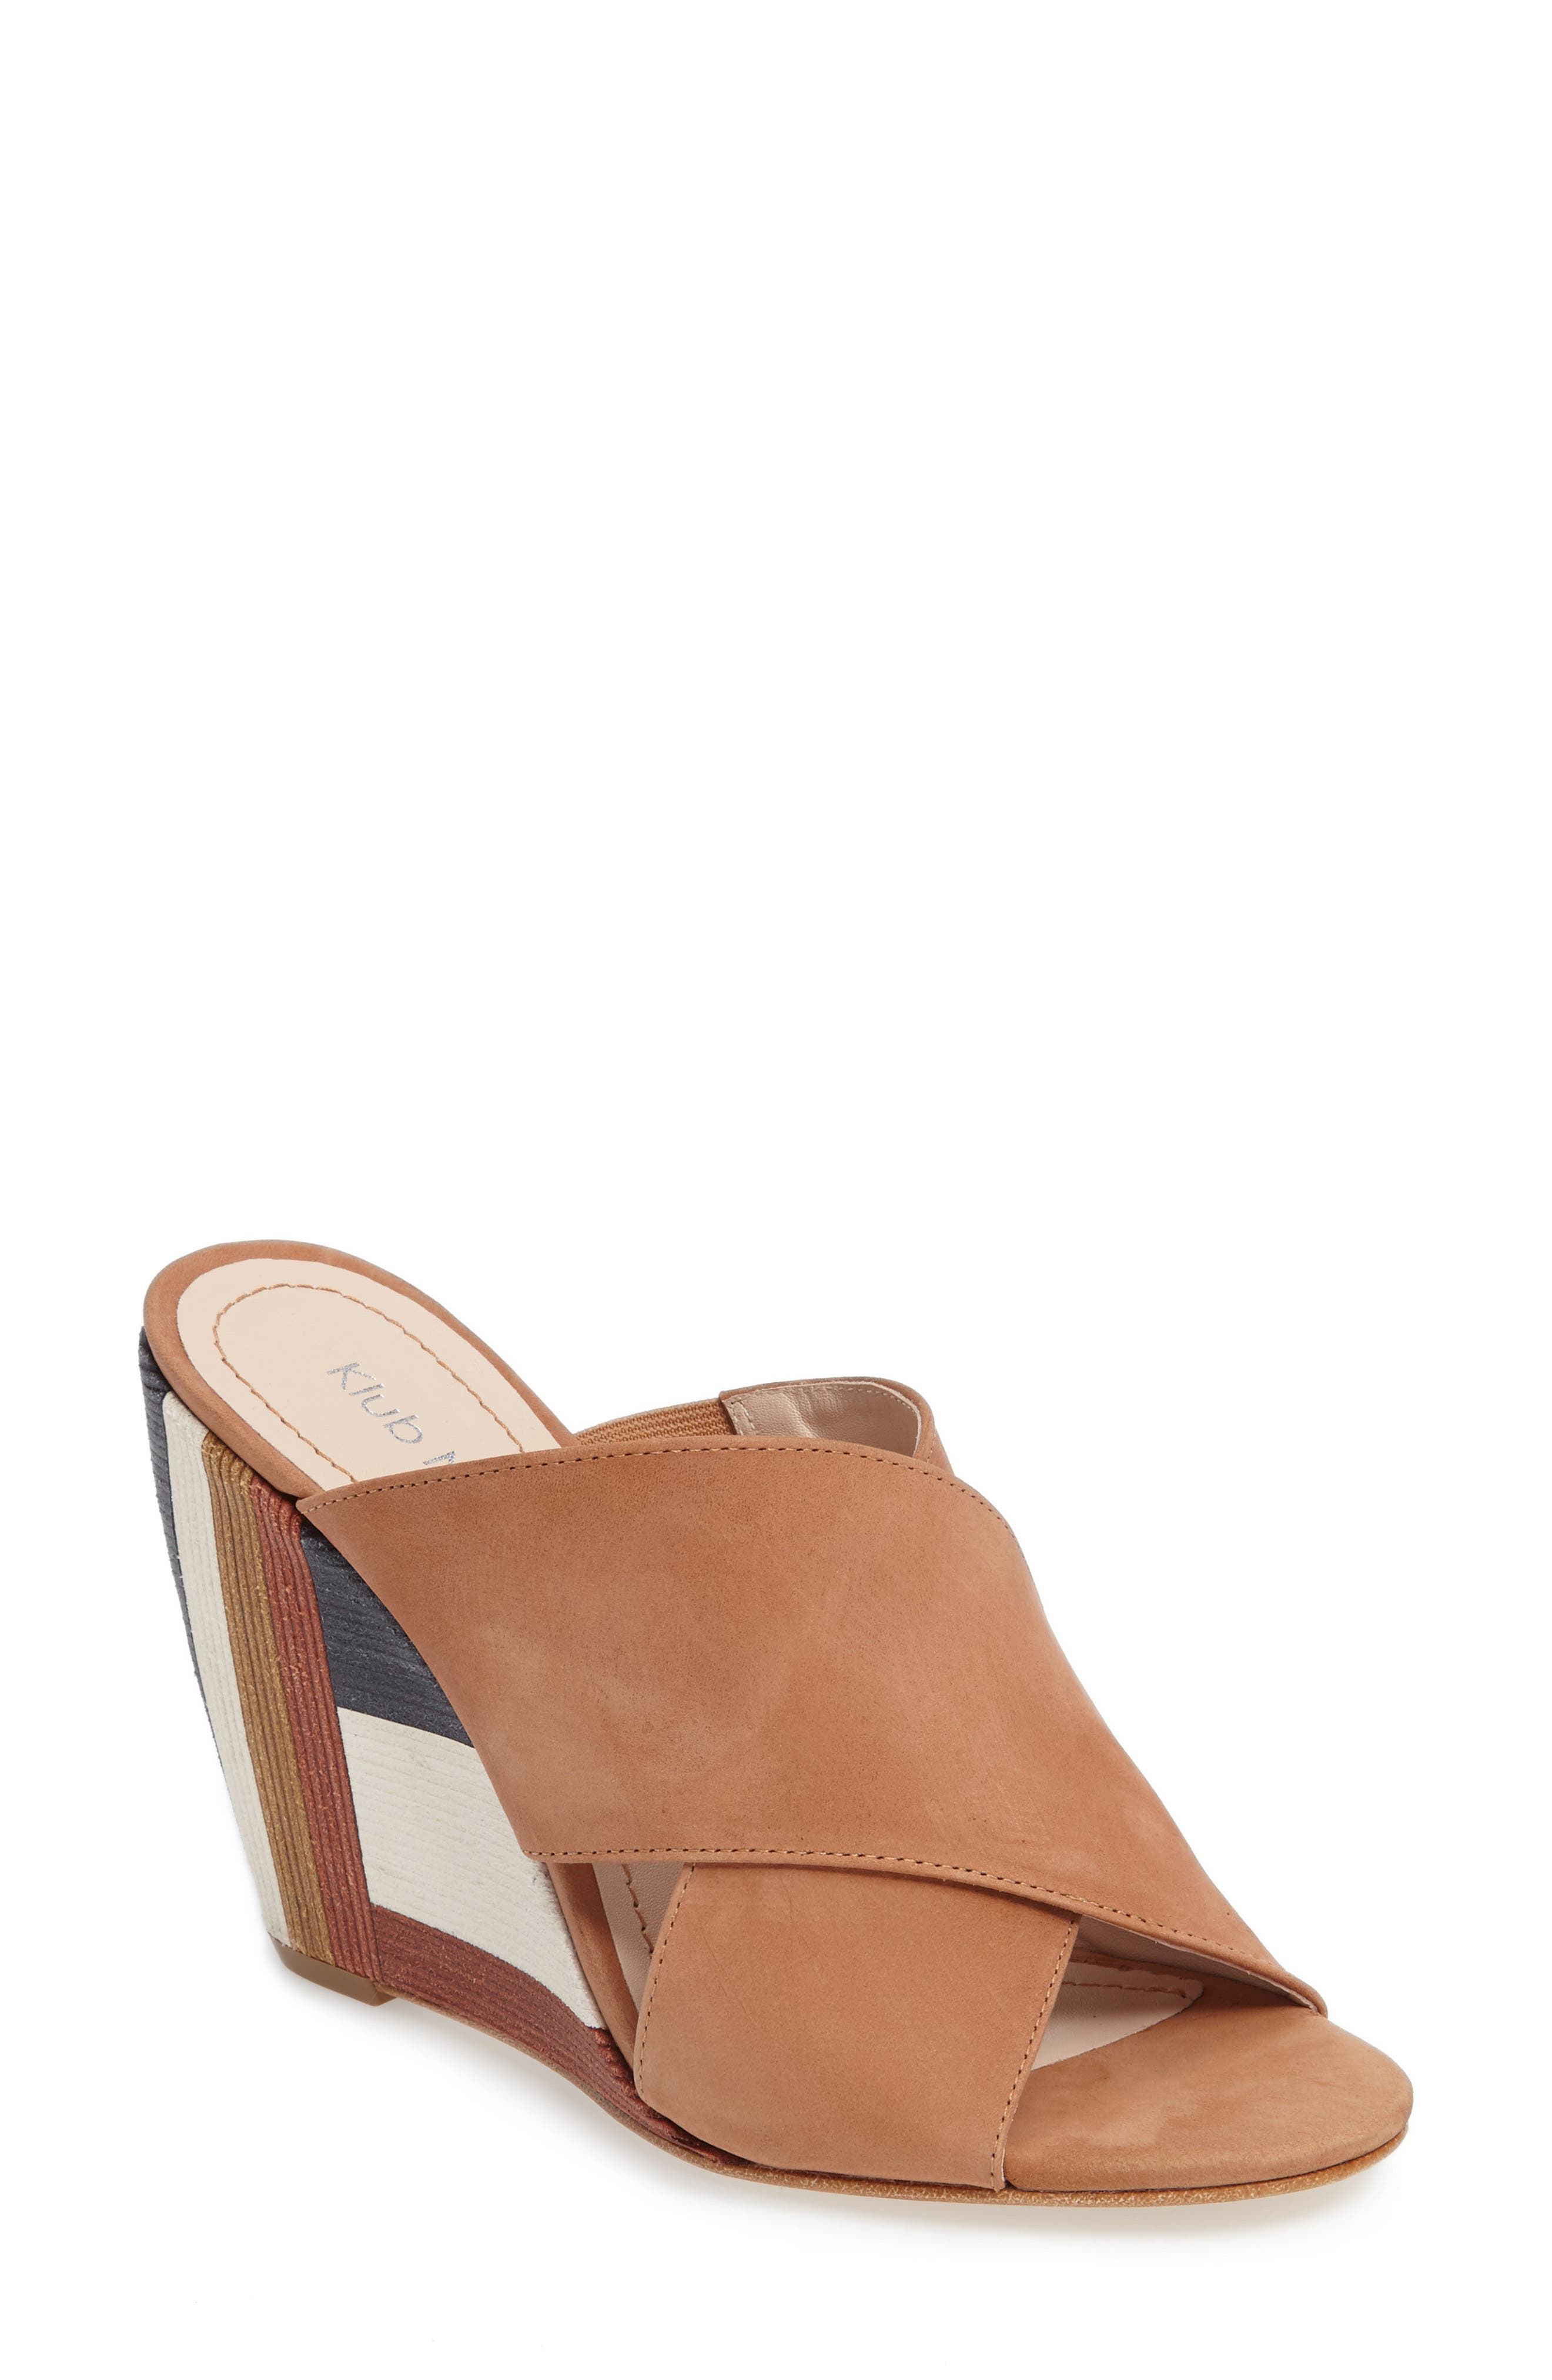 Kamille Wedge,                             Main thumbnail 1, color,                             250